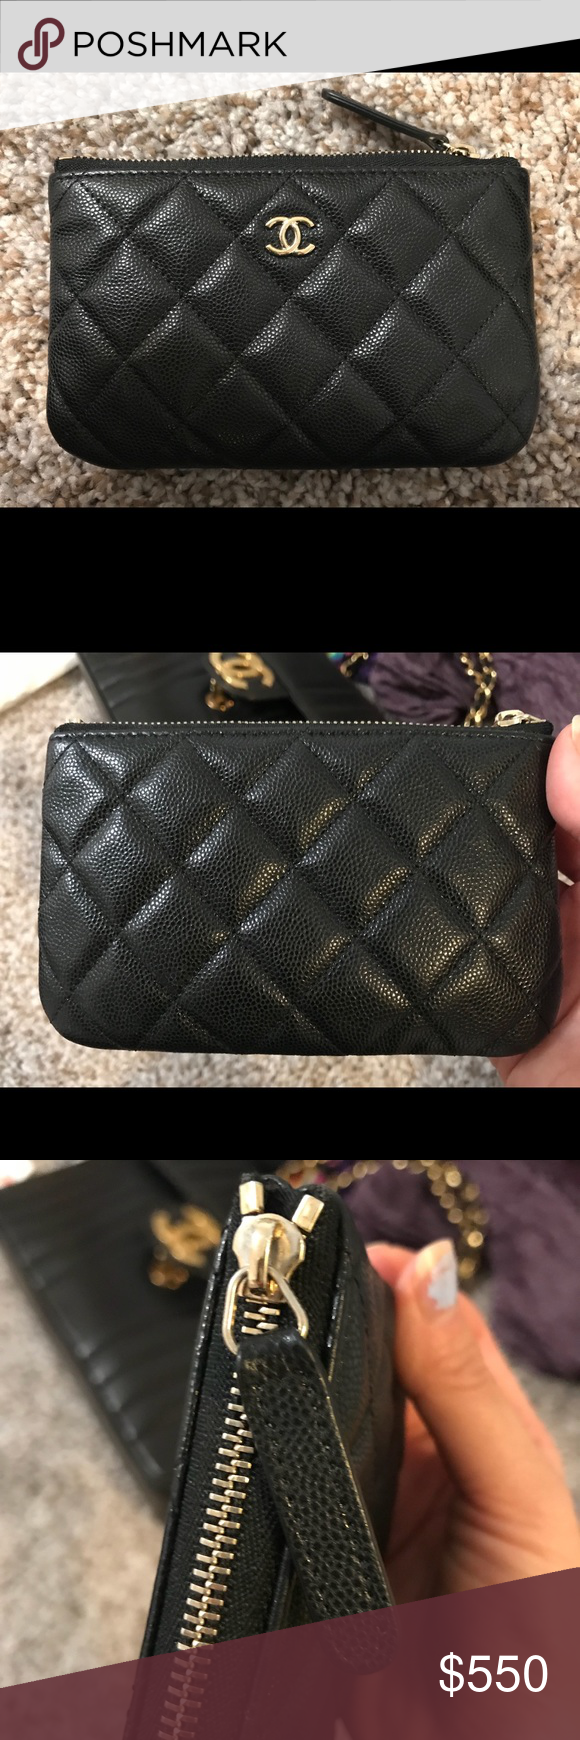 Chanel Black Caviar GHW Mini O case card cosmetic Like new, light scuffs.  Wear on the zipper area. Comes with dust bag, card and box. CHANEL Bags  Wallets 537e69f114